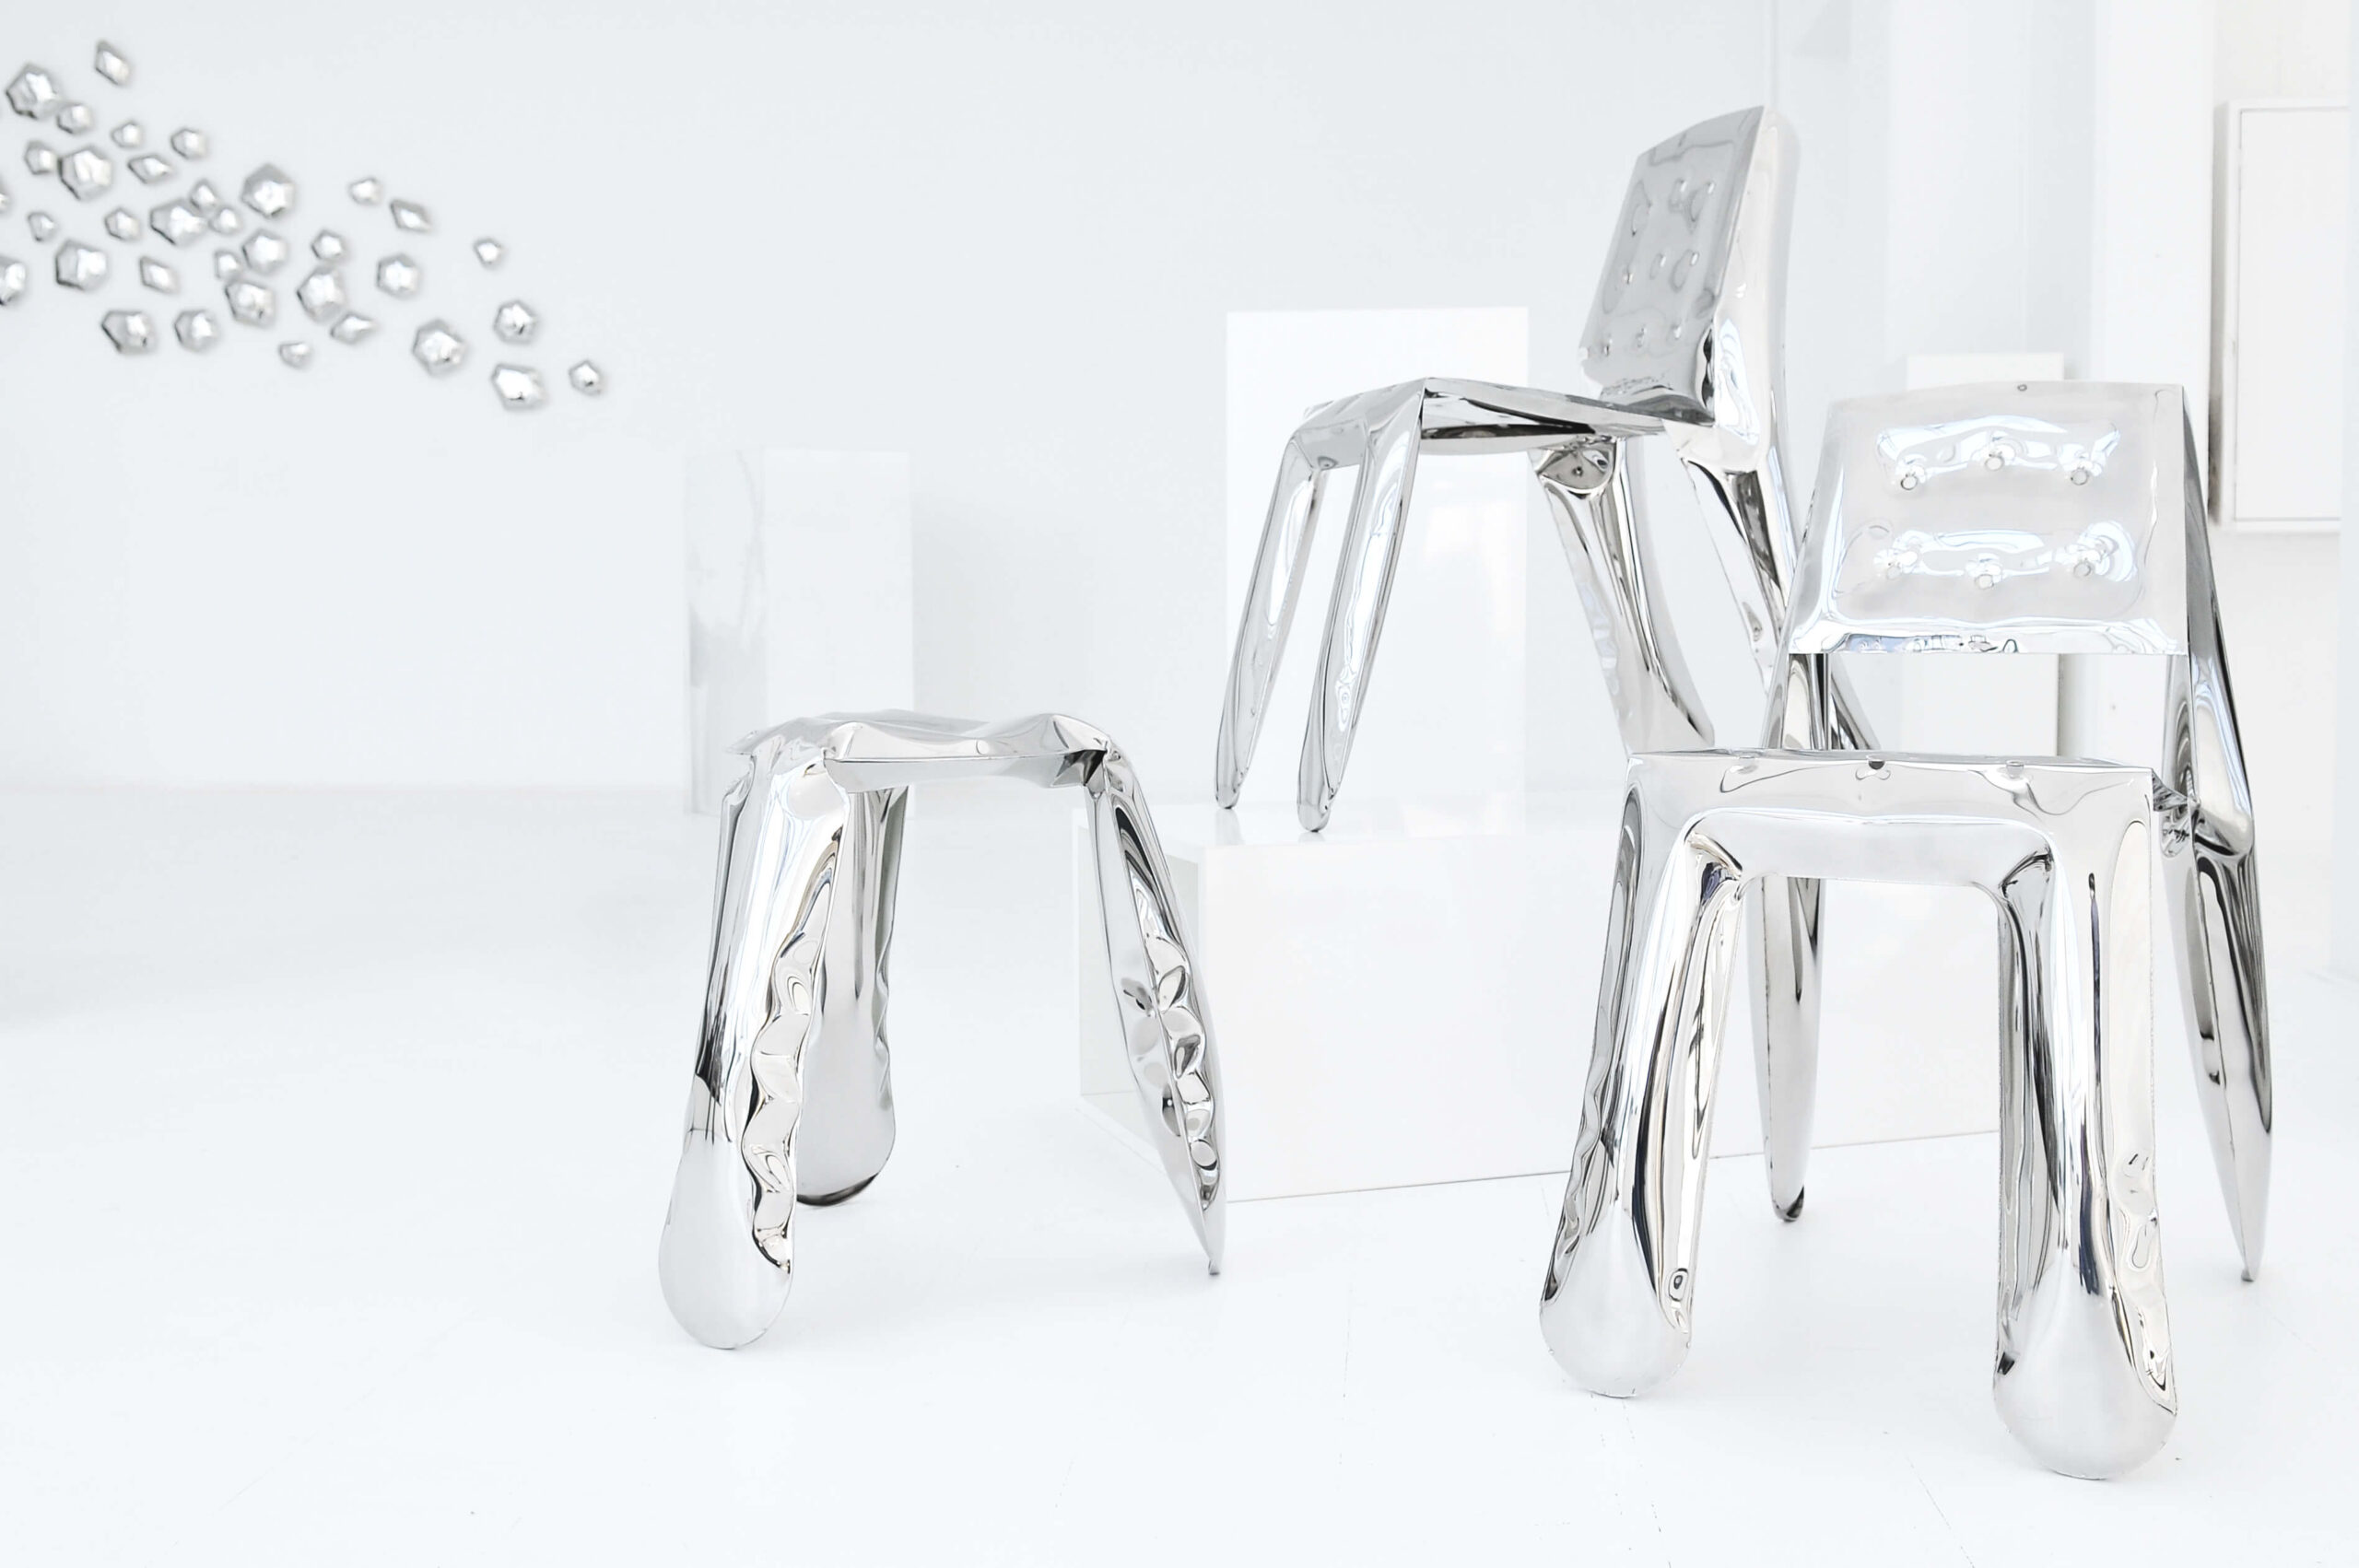 inox furniture by zieta studio plopp chippensteel kamyki